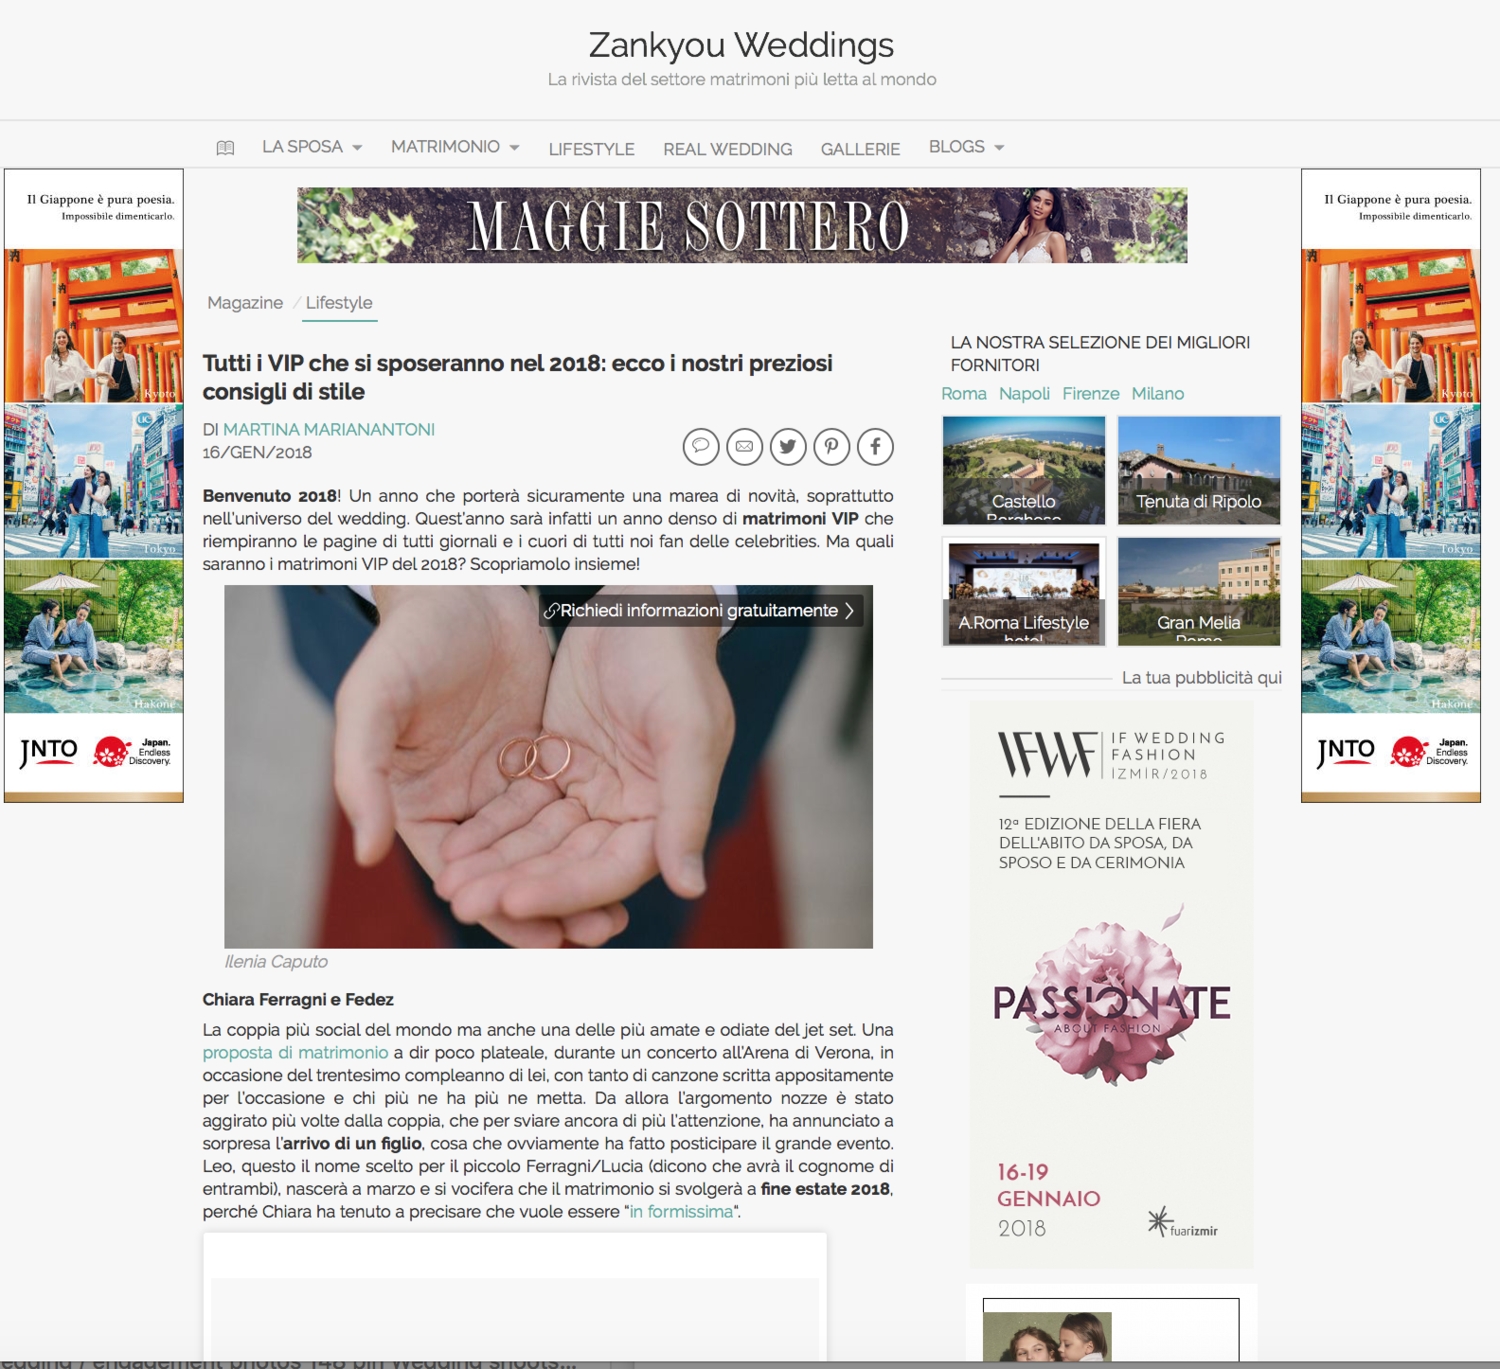 Magazine-Zankyou-Weddings.png